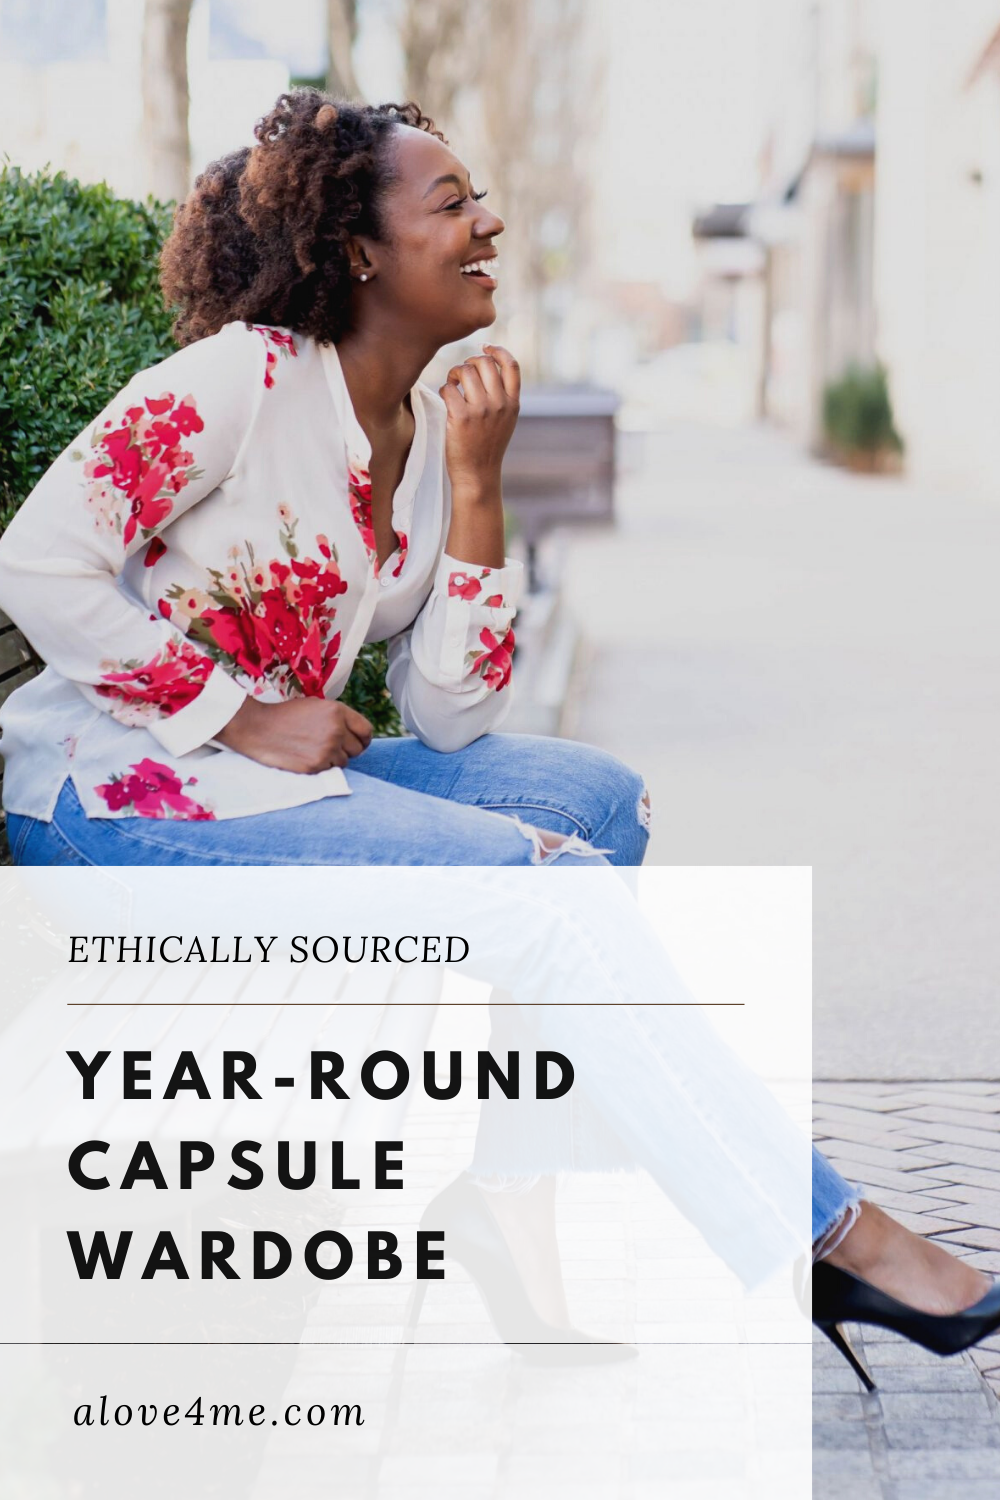 Year-Round Capsule Wardrobe to Always Look Put Together